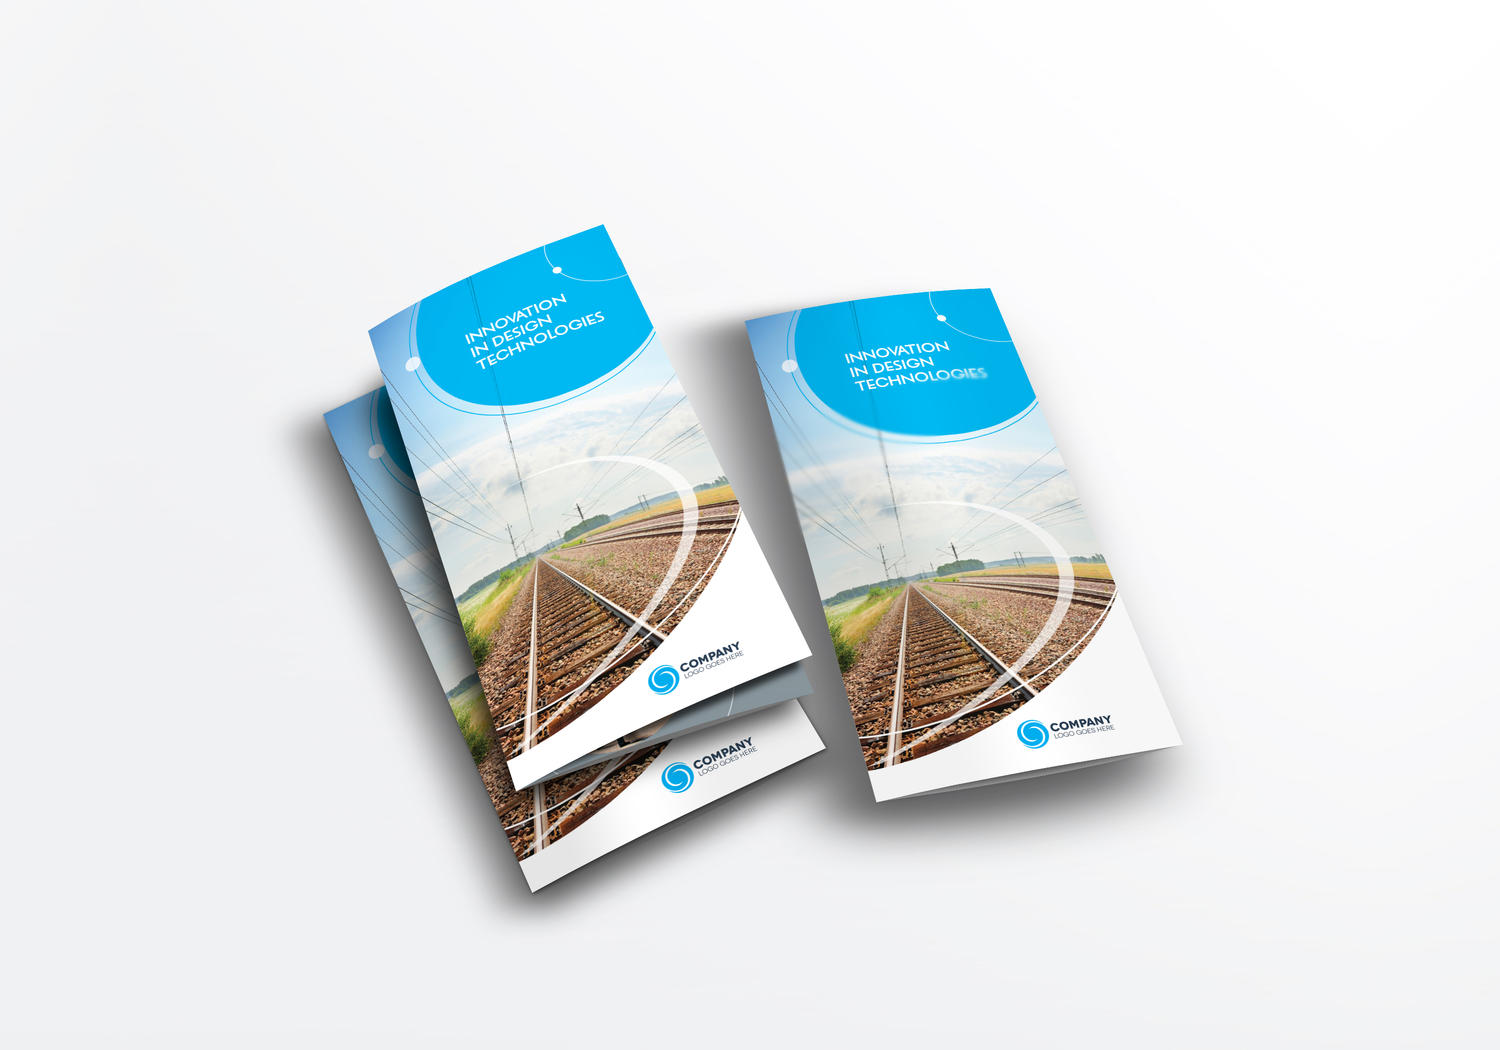 Trifold Brochure Design by BoxedCreative - 12799